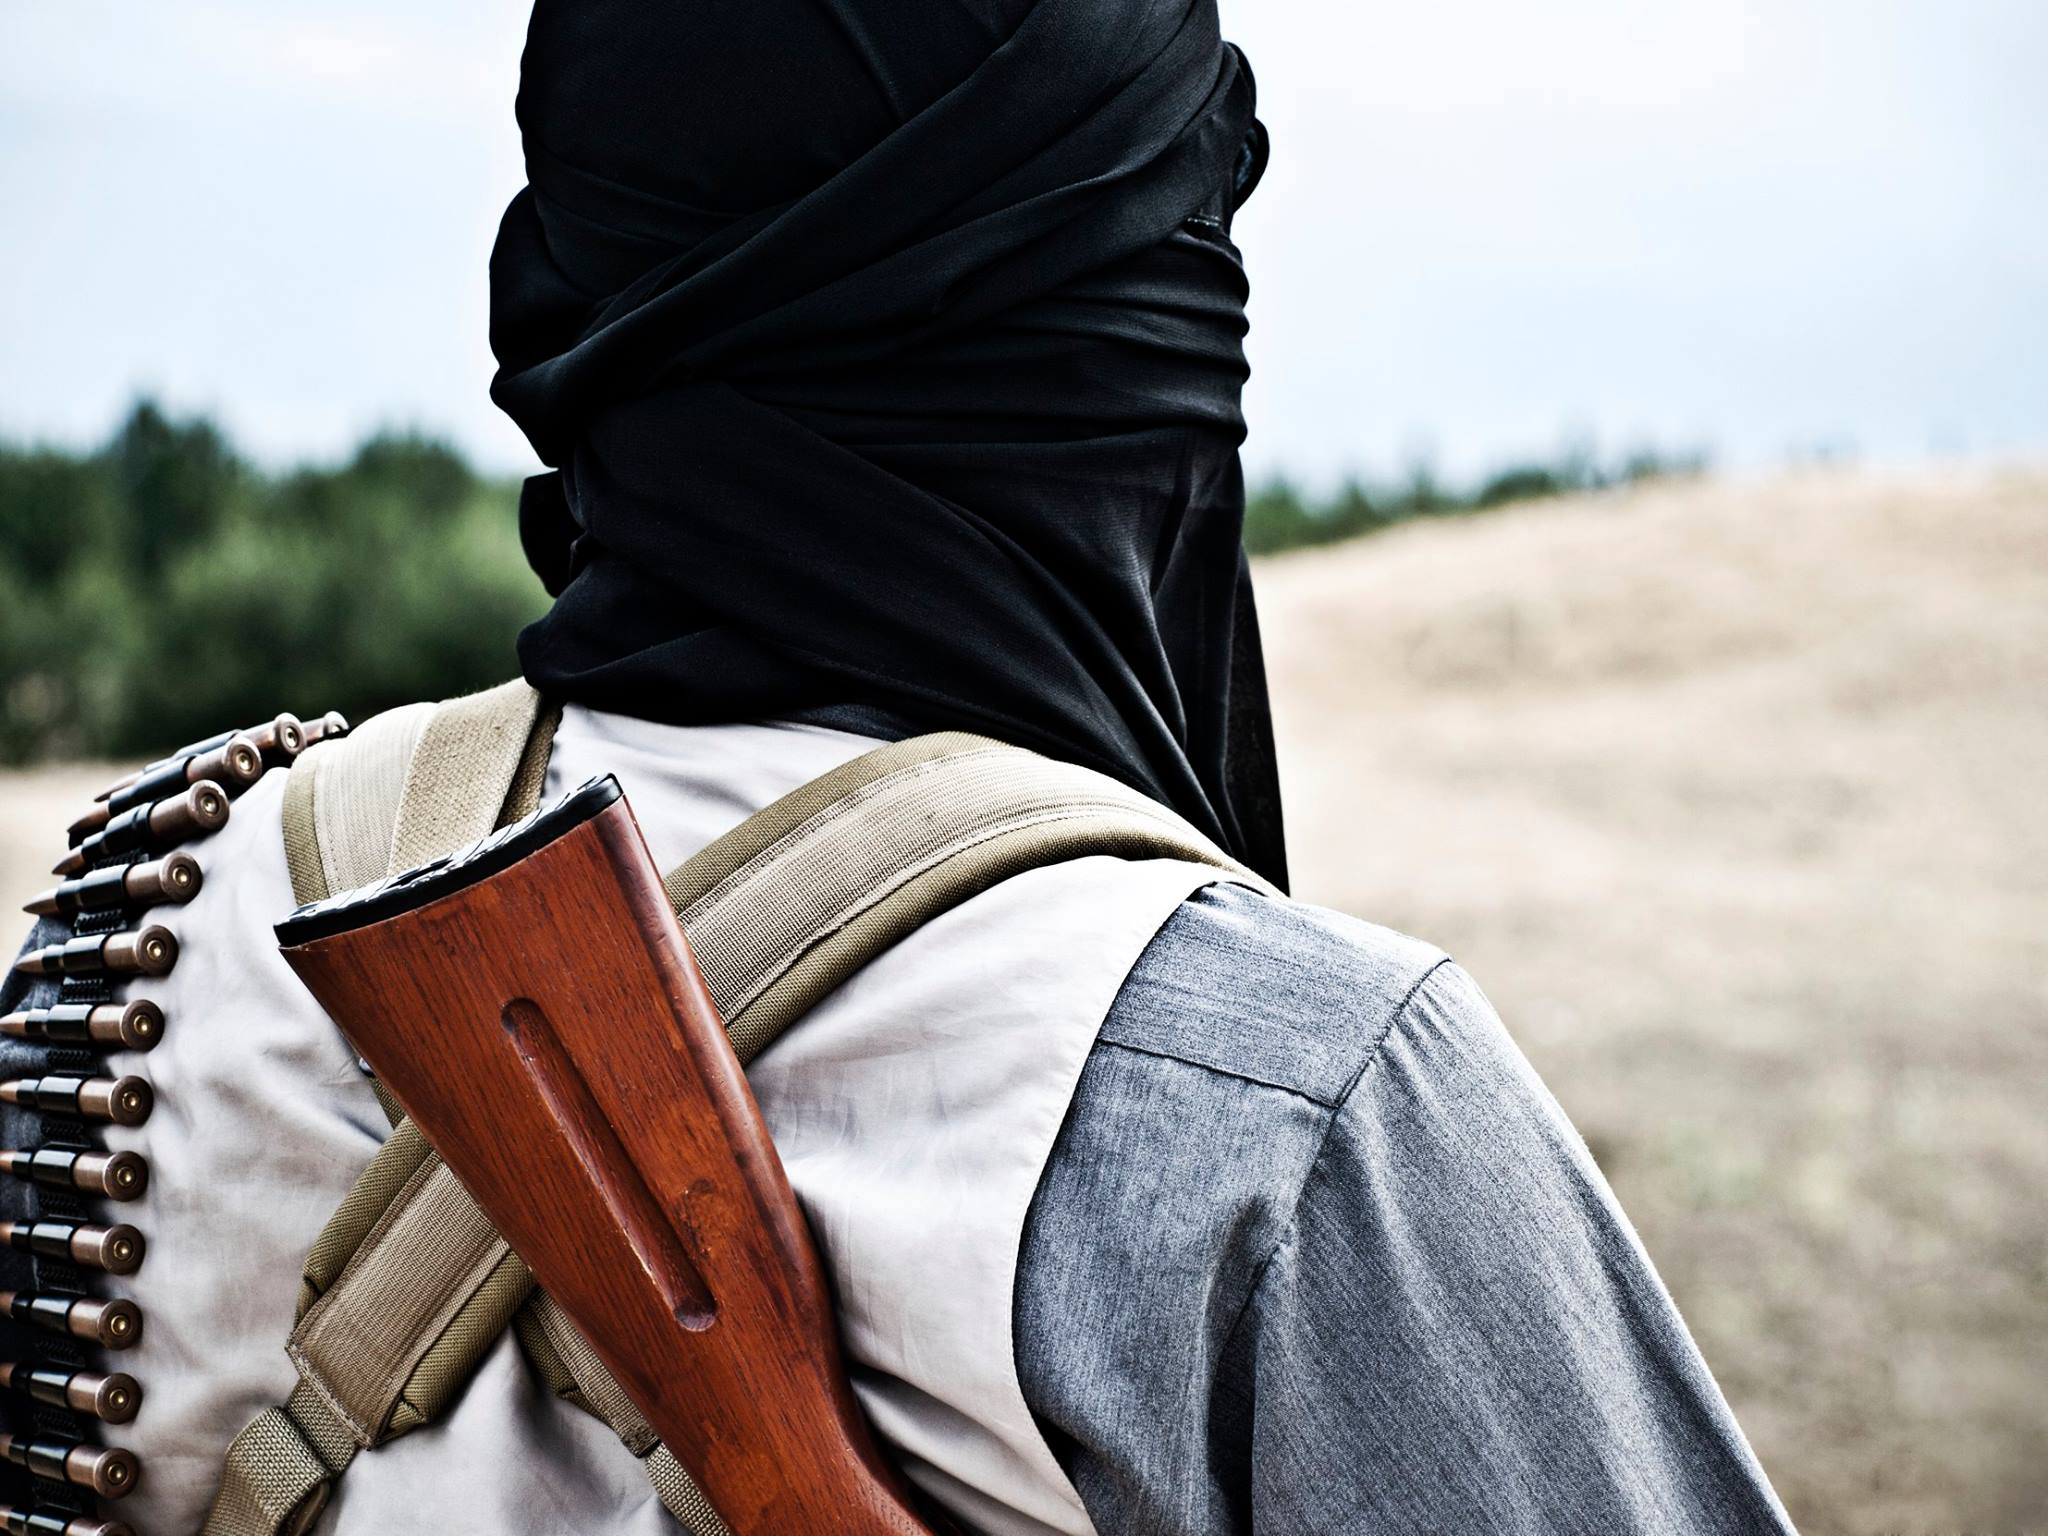 What's in a name: Islamic extremists